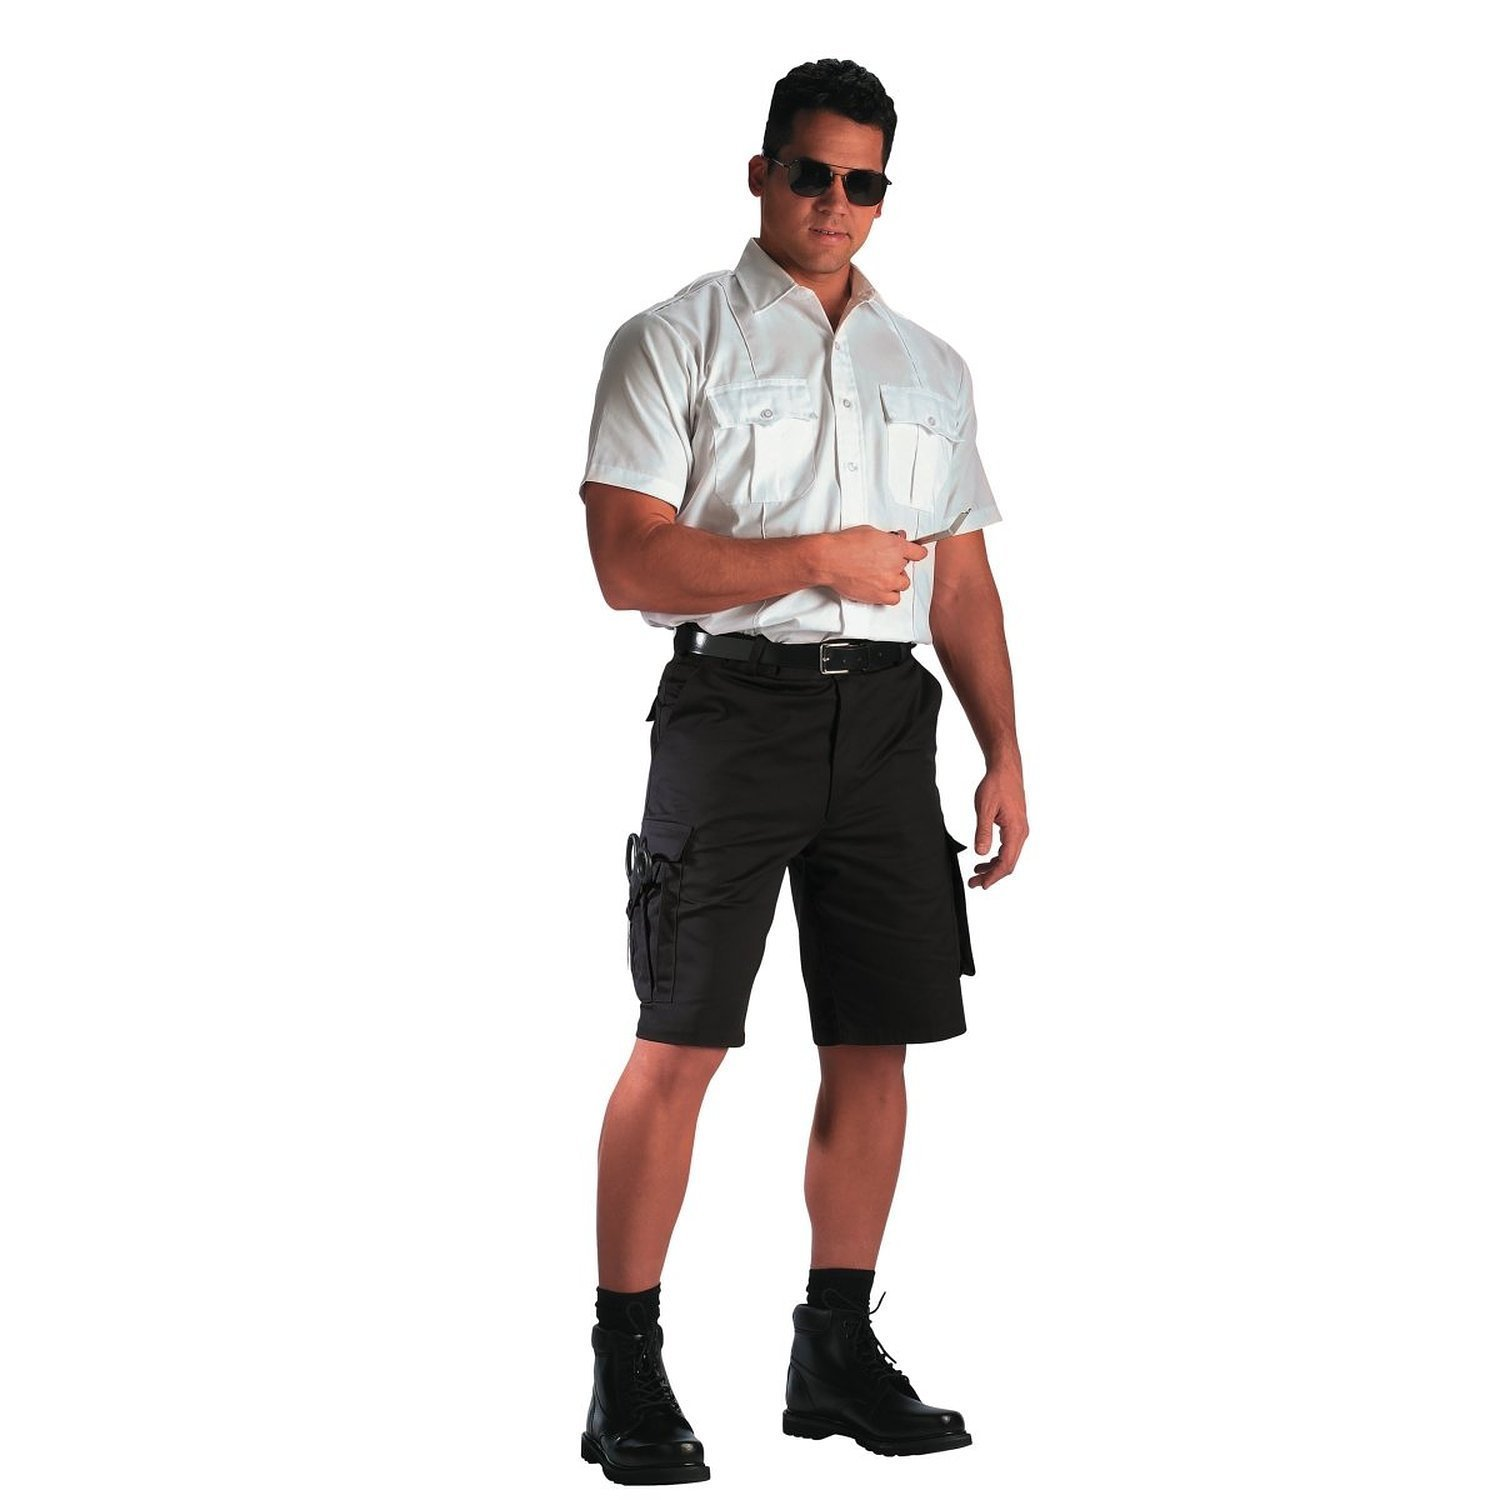 Emt Shorts Black Sports Outdoors Golf Wiring Schematicit Shortsi Put The Positive Battery Cable On